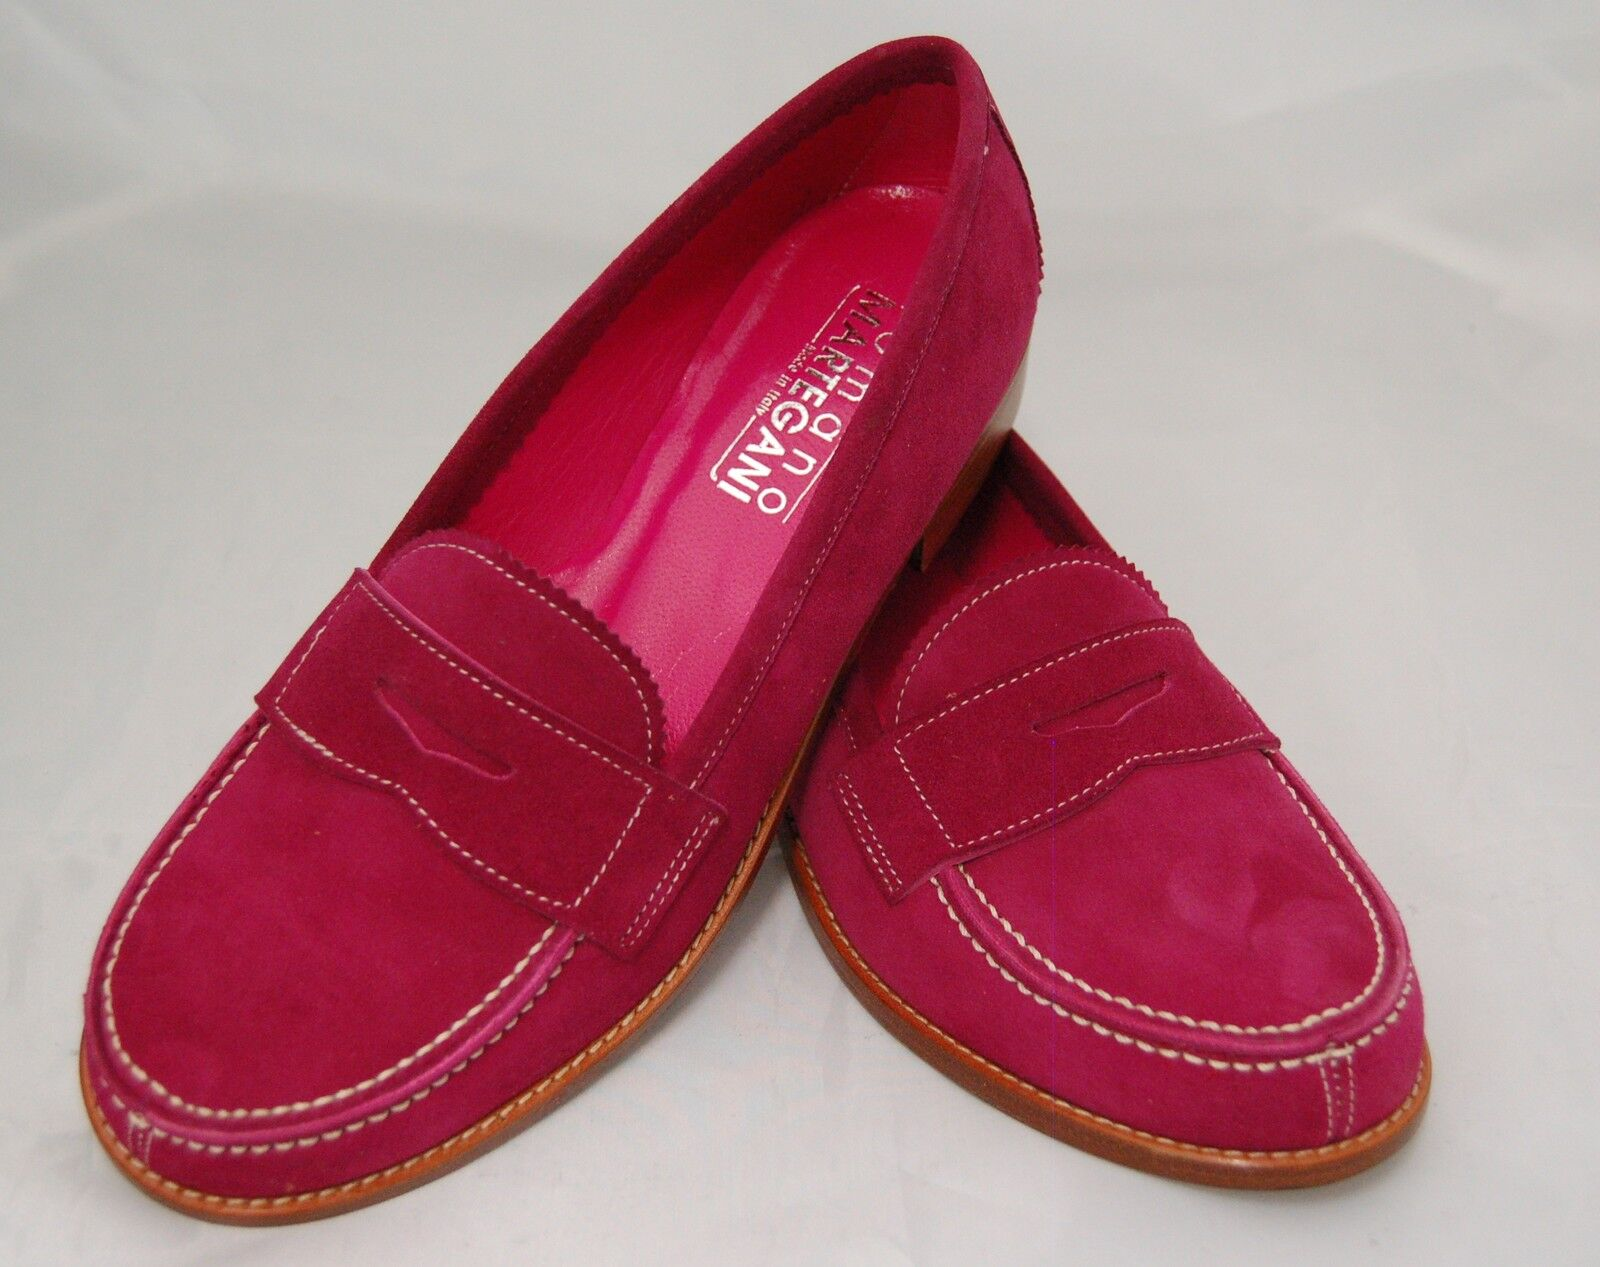 WOMAN - PENNY LOAFER - 37 - LINING FUXIA SUEDE - FUXIA LINING - - LEATHER SOLE/BLAKE CST 536c64